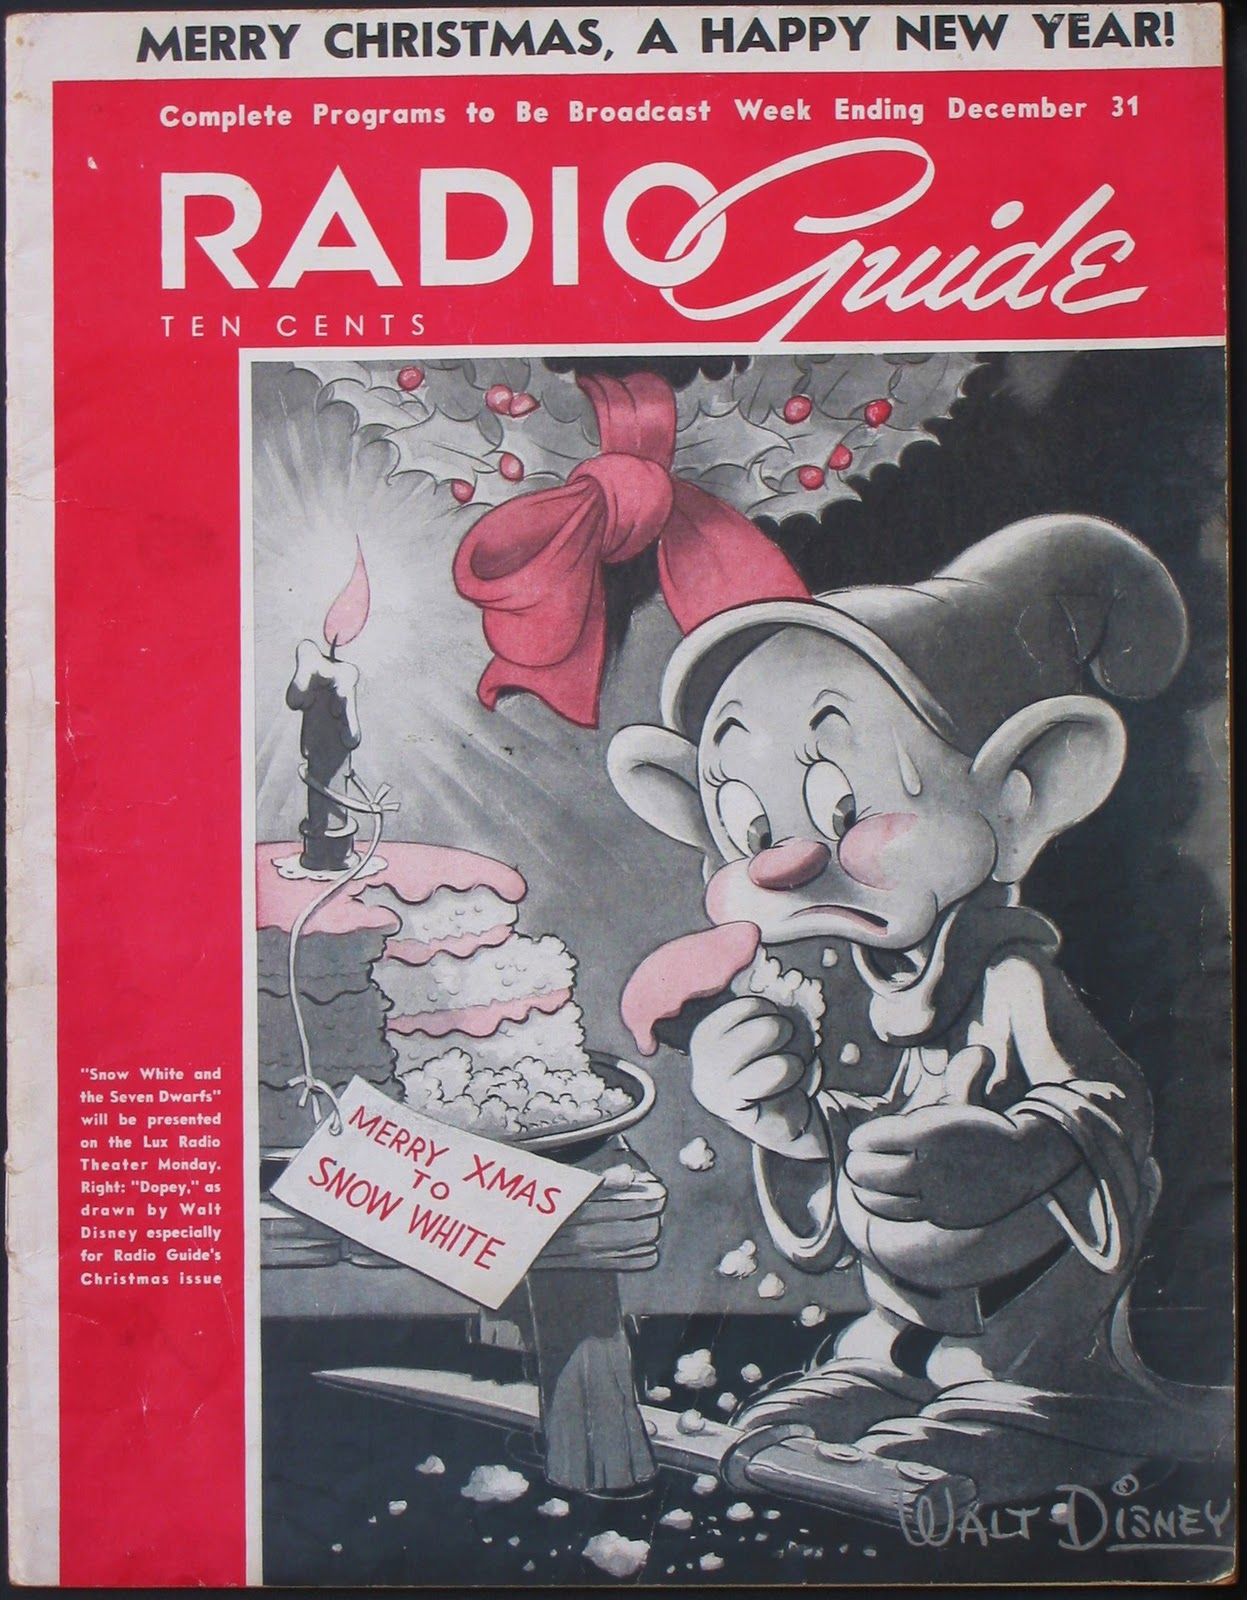 It featured Dopey on the cover and promoted the Monday airing of the Lux  Theatre show: Radio Guide ...